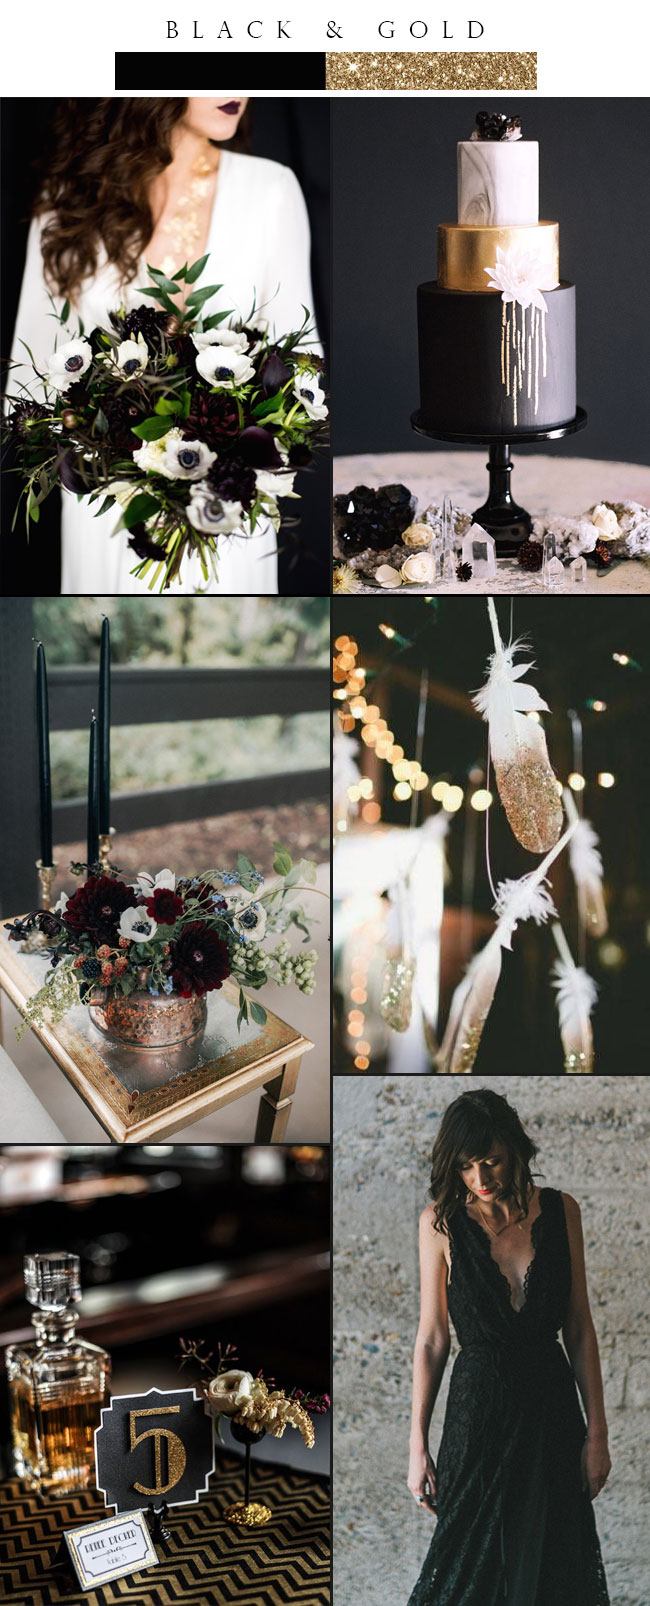 Glamorous Black and Gold Color Palette Inspiration for Winter Weddings